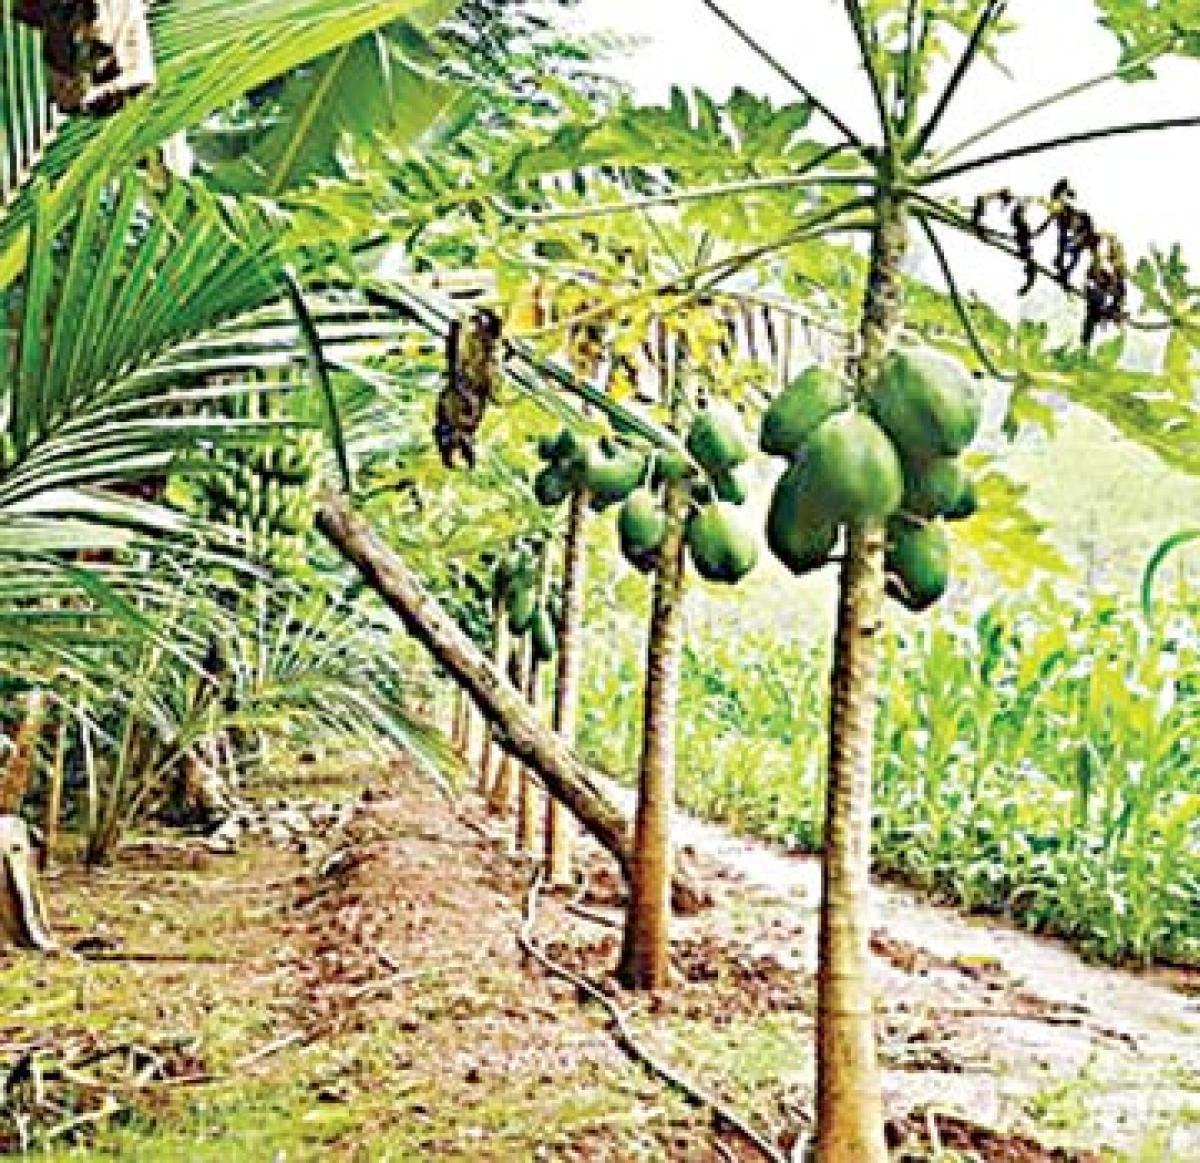 Integrated farming is the way forward